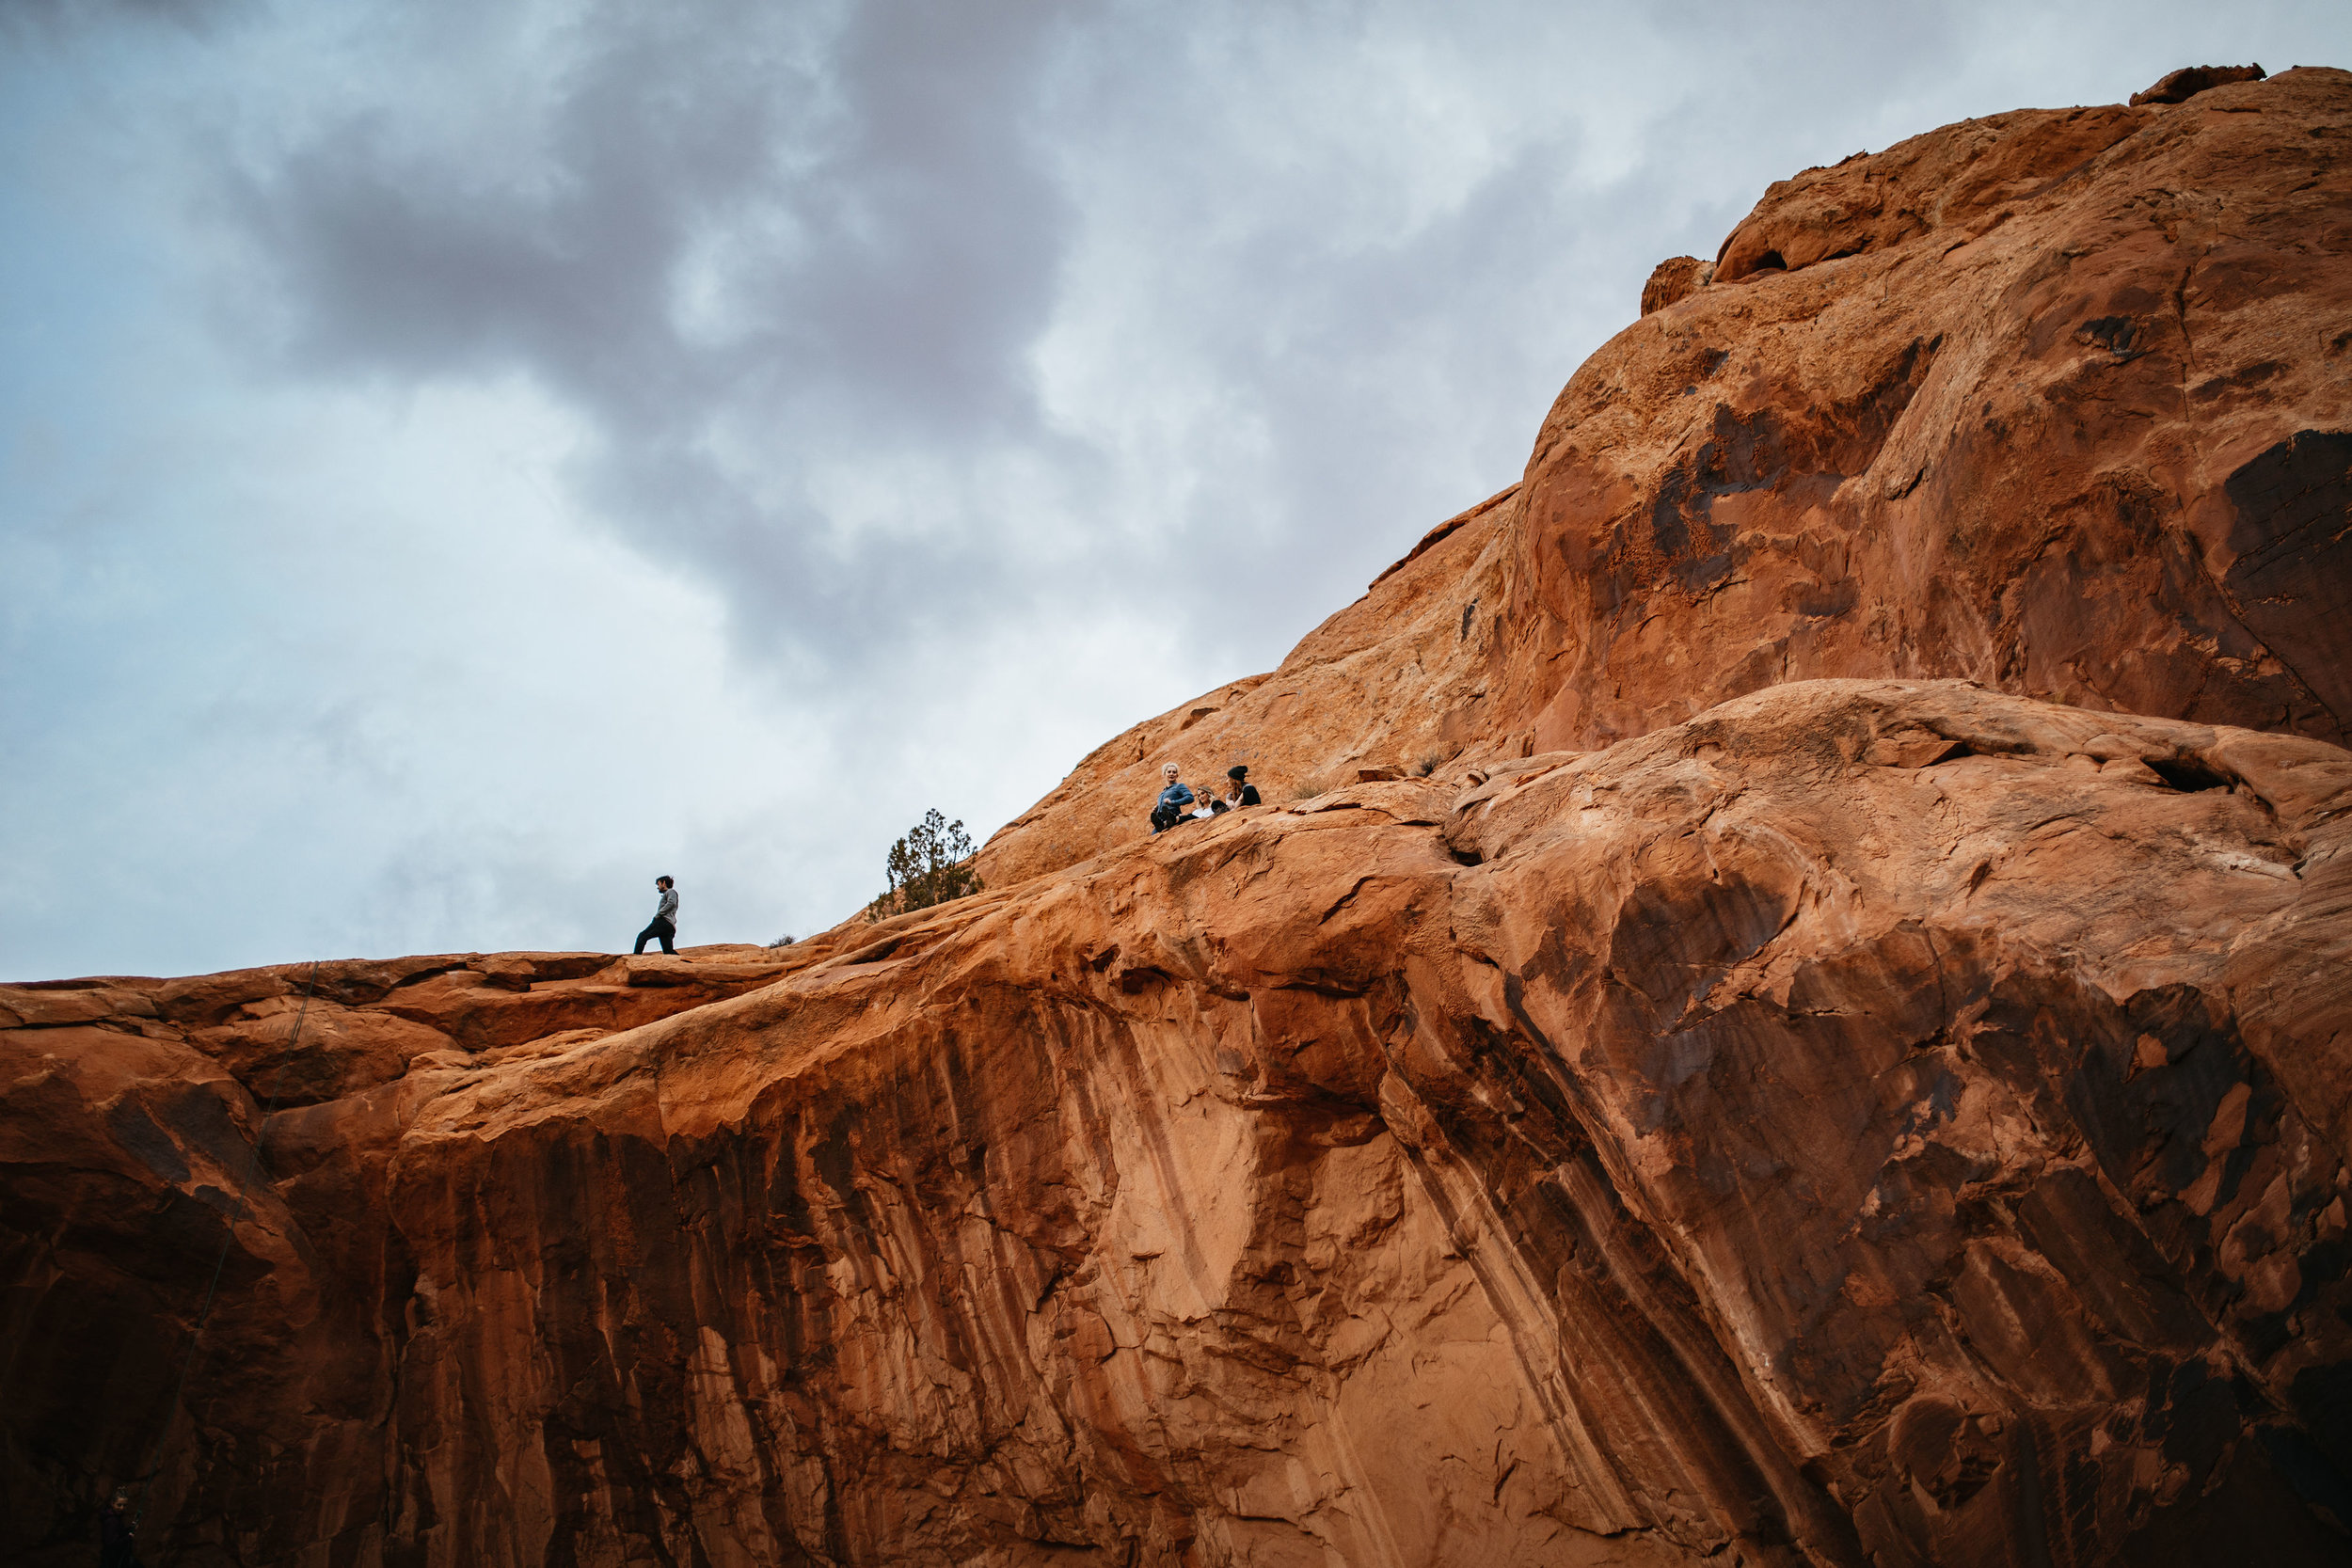 Sitting on a cliff in Moab, Utah